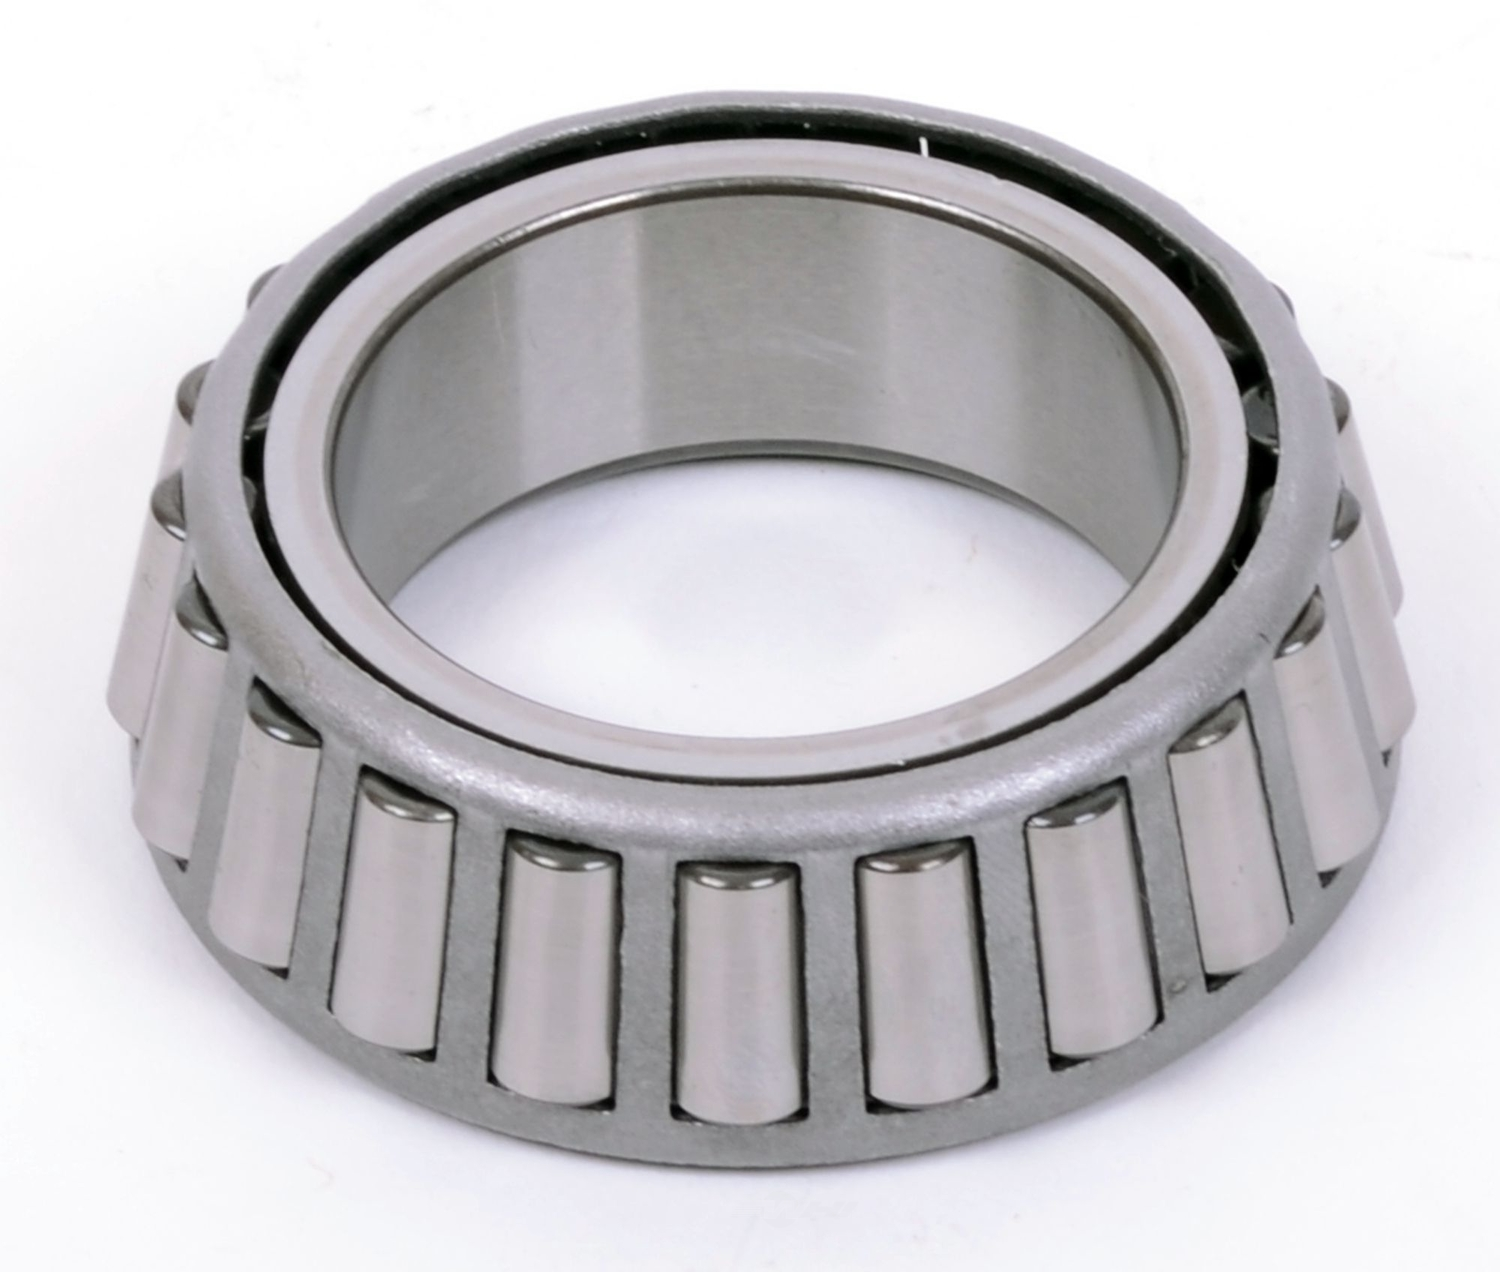 SKF (CHICAGO RAWHIDE) - Auto Trans Differential Bearing - SKF LM29749 VP